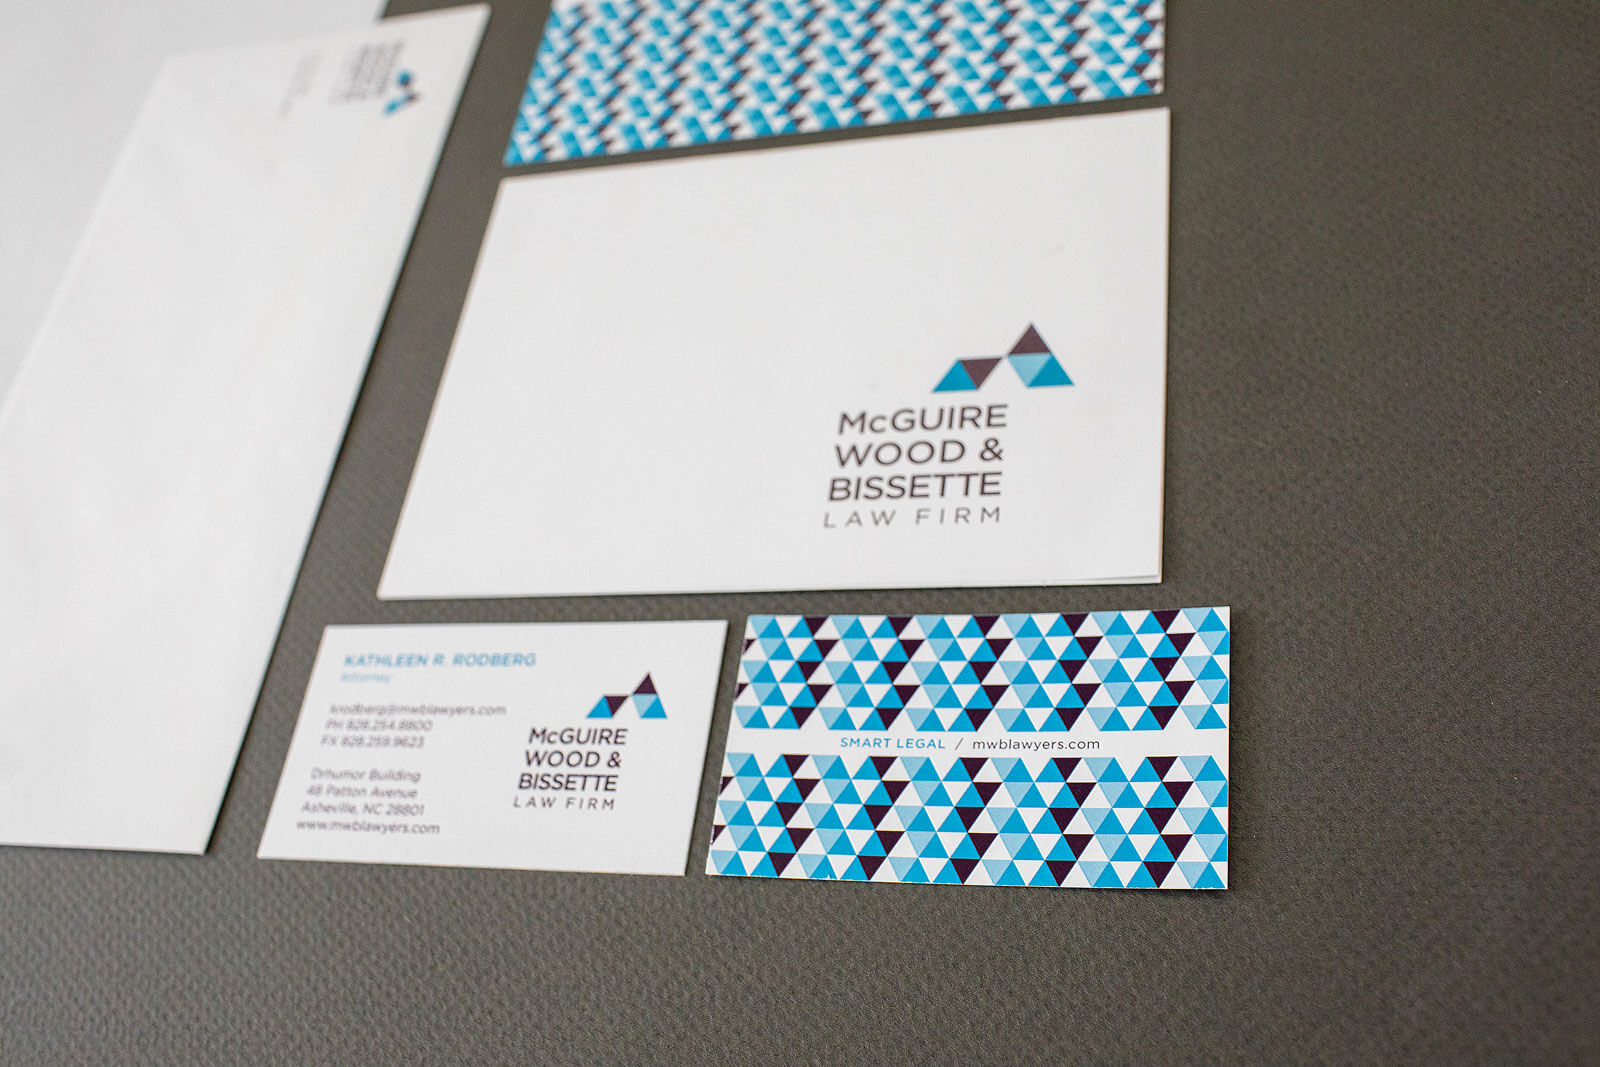 McGuire Wood & Bissette Law Firm stationery set detail showing a blue and burgundy triangle pattern.